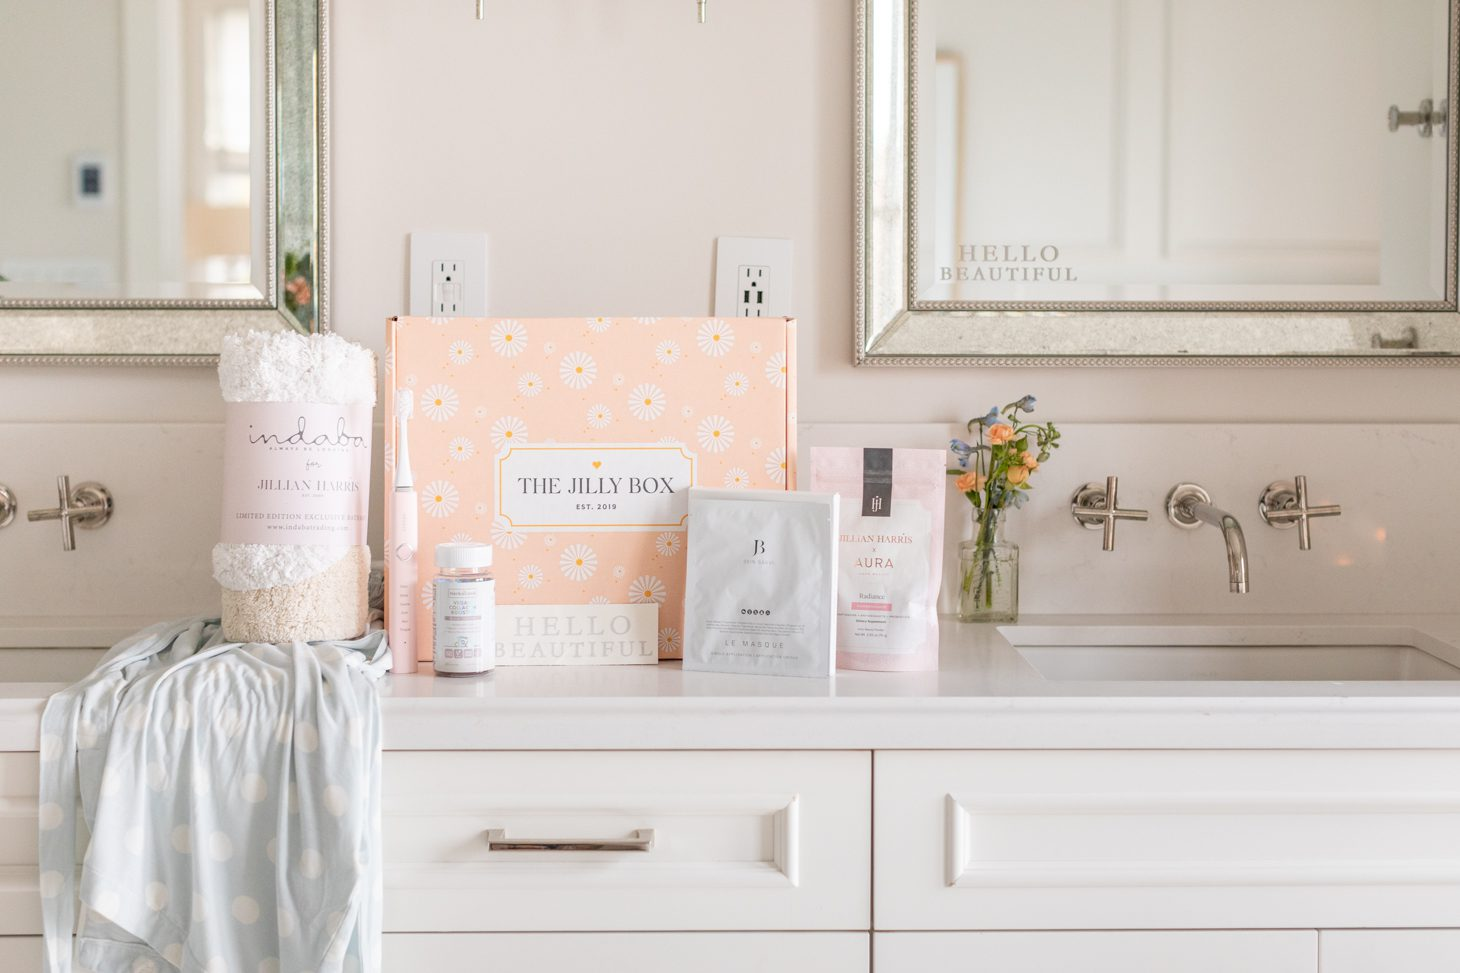 Jillian Harris Spring 2021 Jilly Box contents